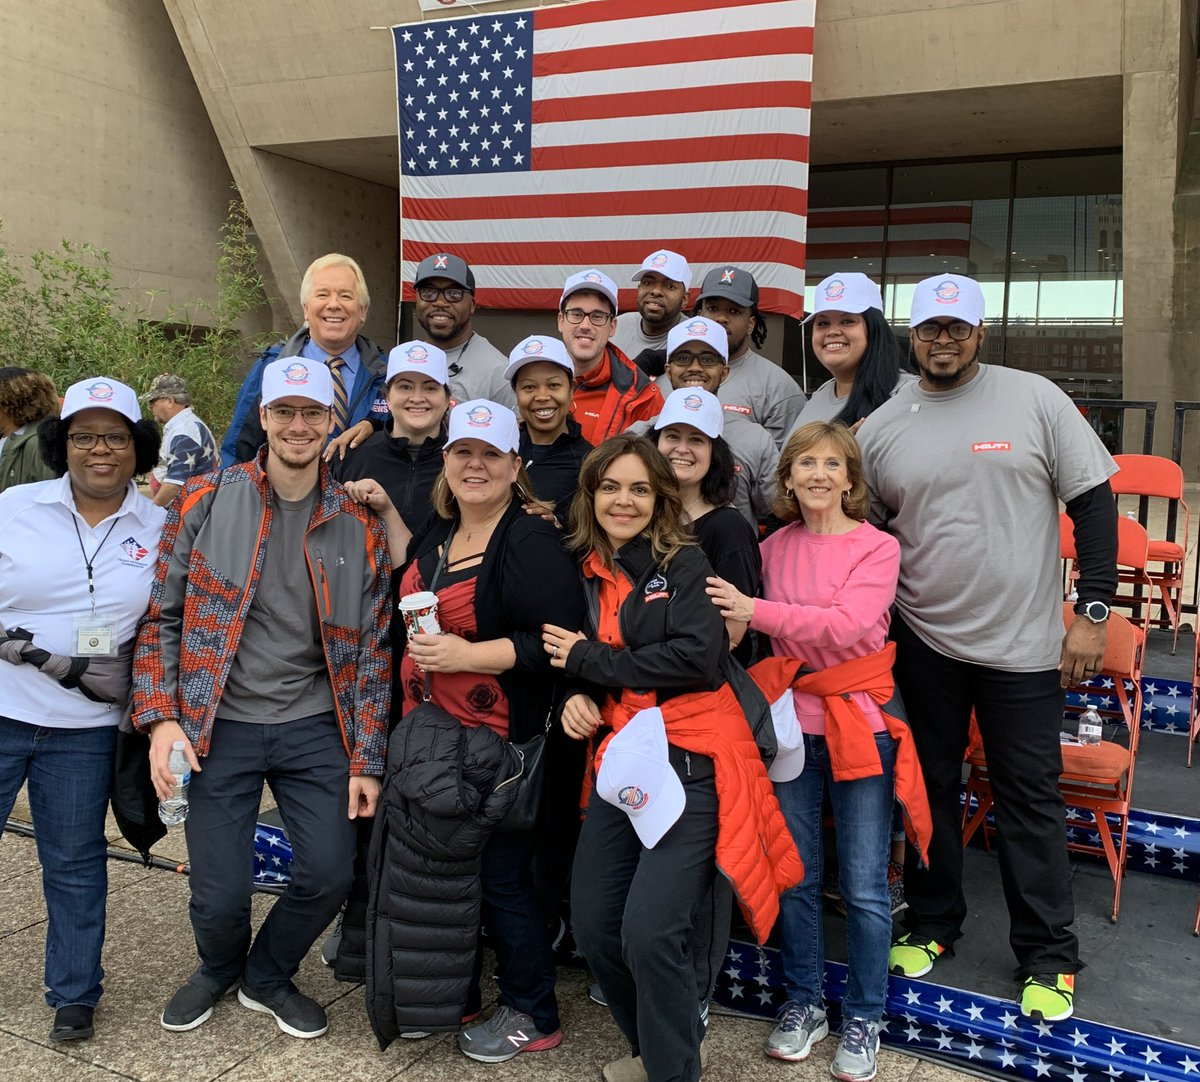 Reporting live this morning, on Dallas' Veterans Day activities. Below are the volunteers from Hilti, a construction services company. They're helping with with set-up. Parade starts at 11:10 am. Be sure to bring a jacket; Temps will be dropping around parade time.